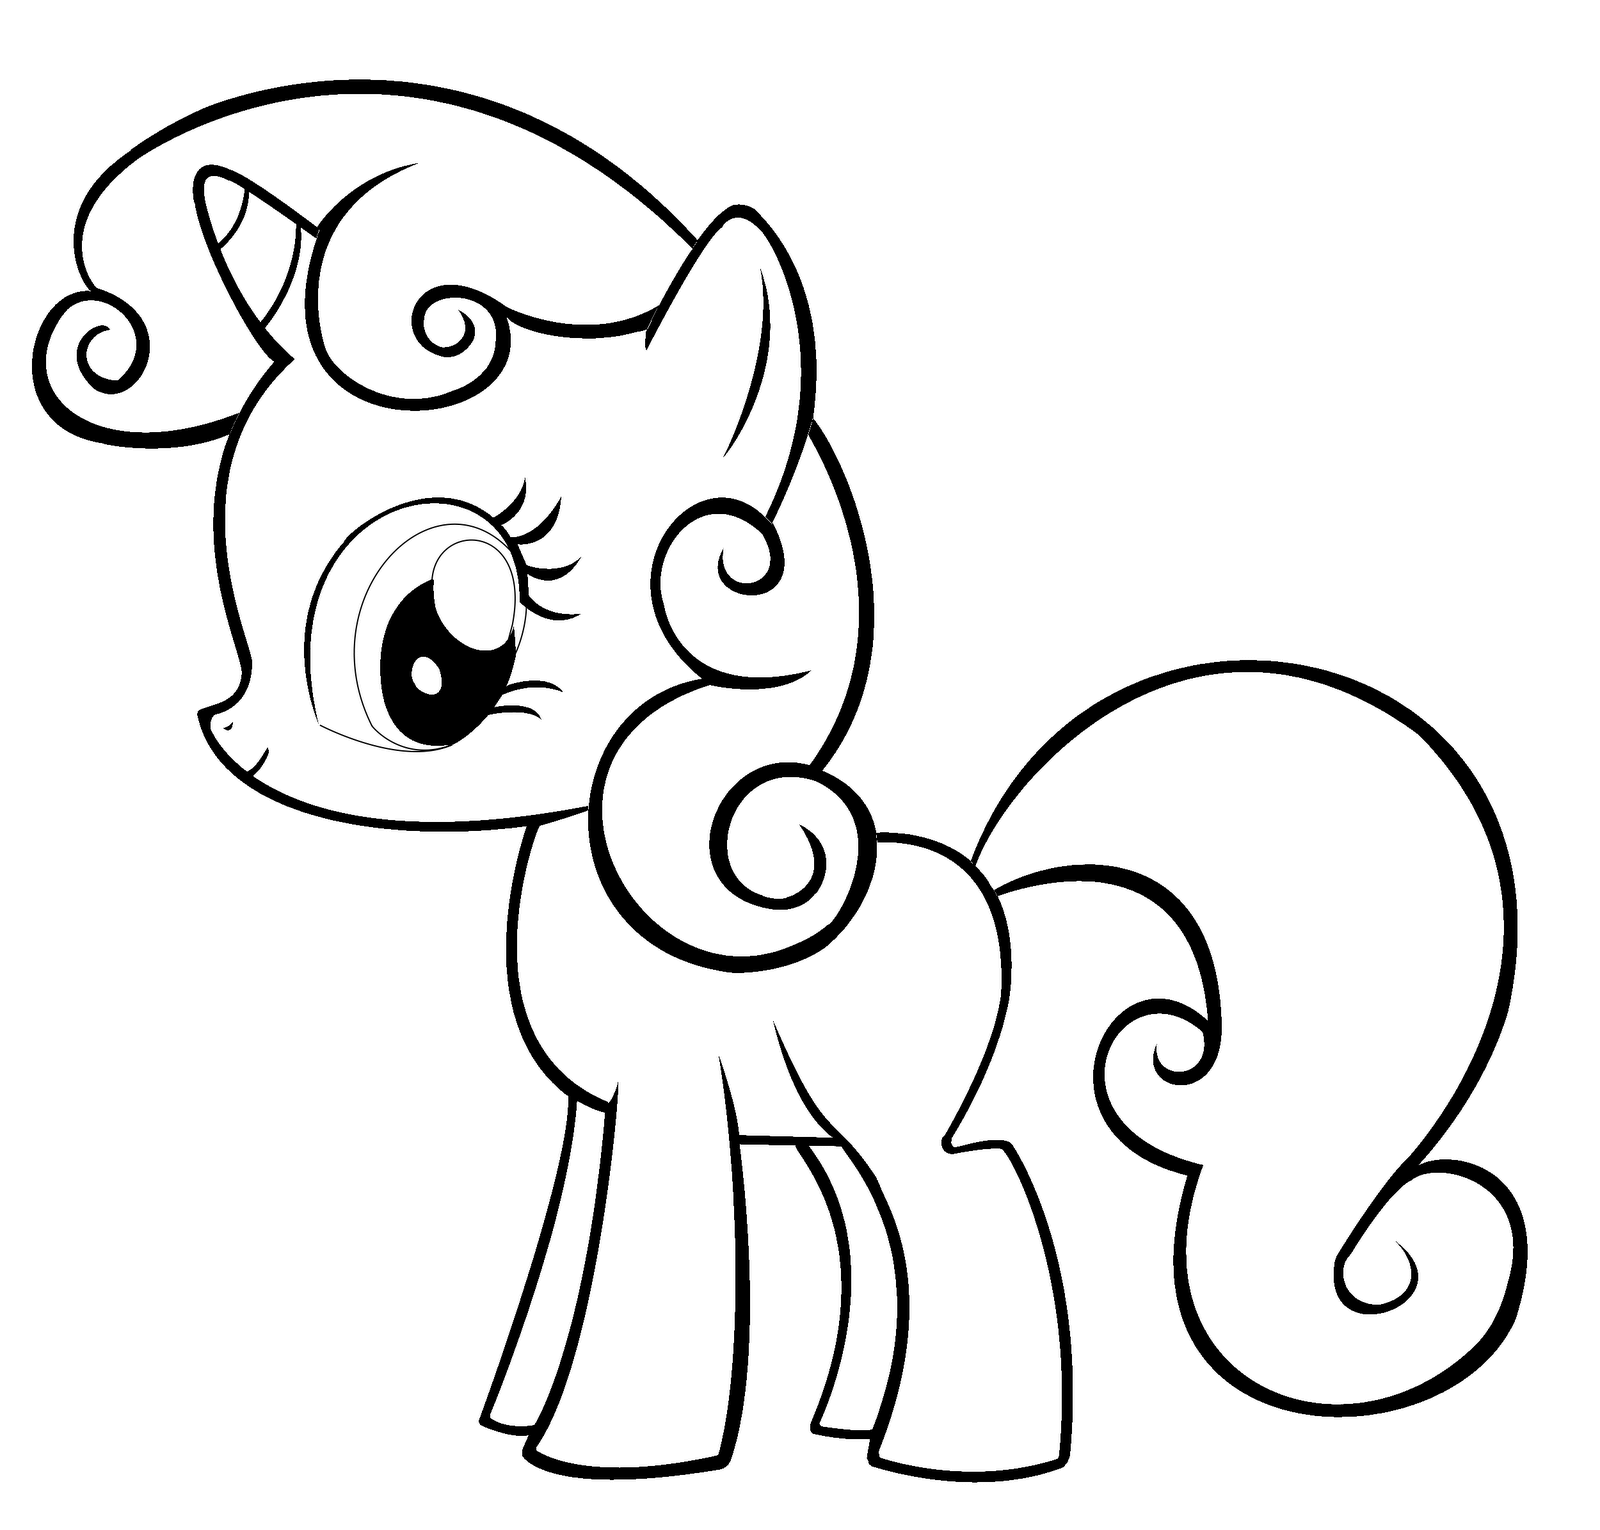 20 My Little Pony Coloring Pages Of 2017 Your Kid Will Love | Pony ...